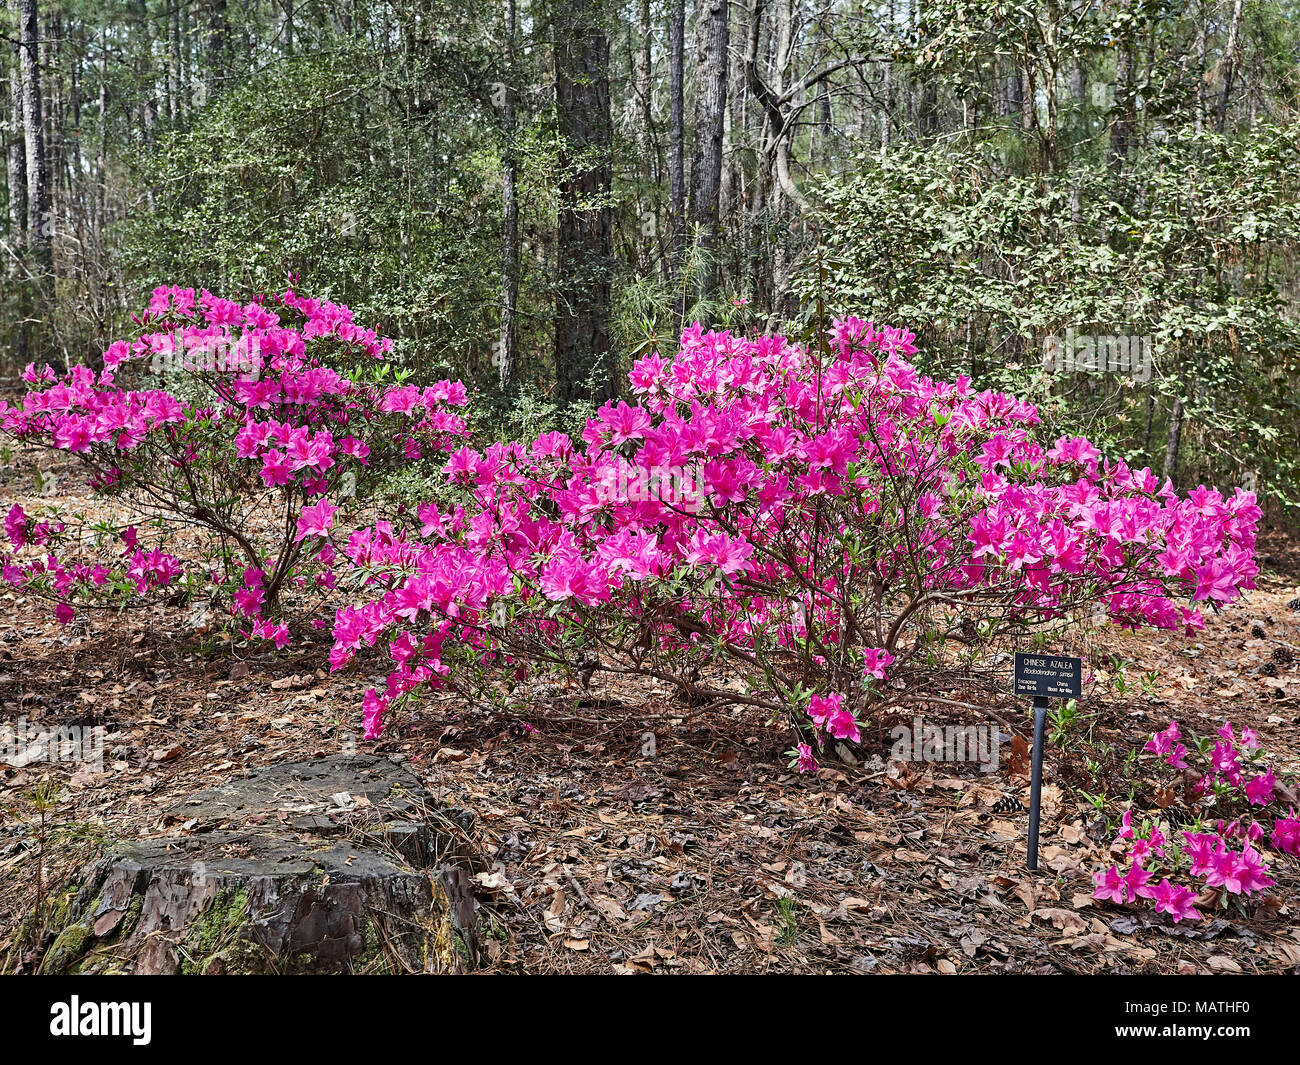 Rhododendron simsii, Chinese Azalea, growing and in full bloom or blooming with pink flowers or blooms in Callaway Garden, Pine Mountain Georgia, USA. - Stock Image